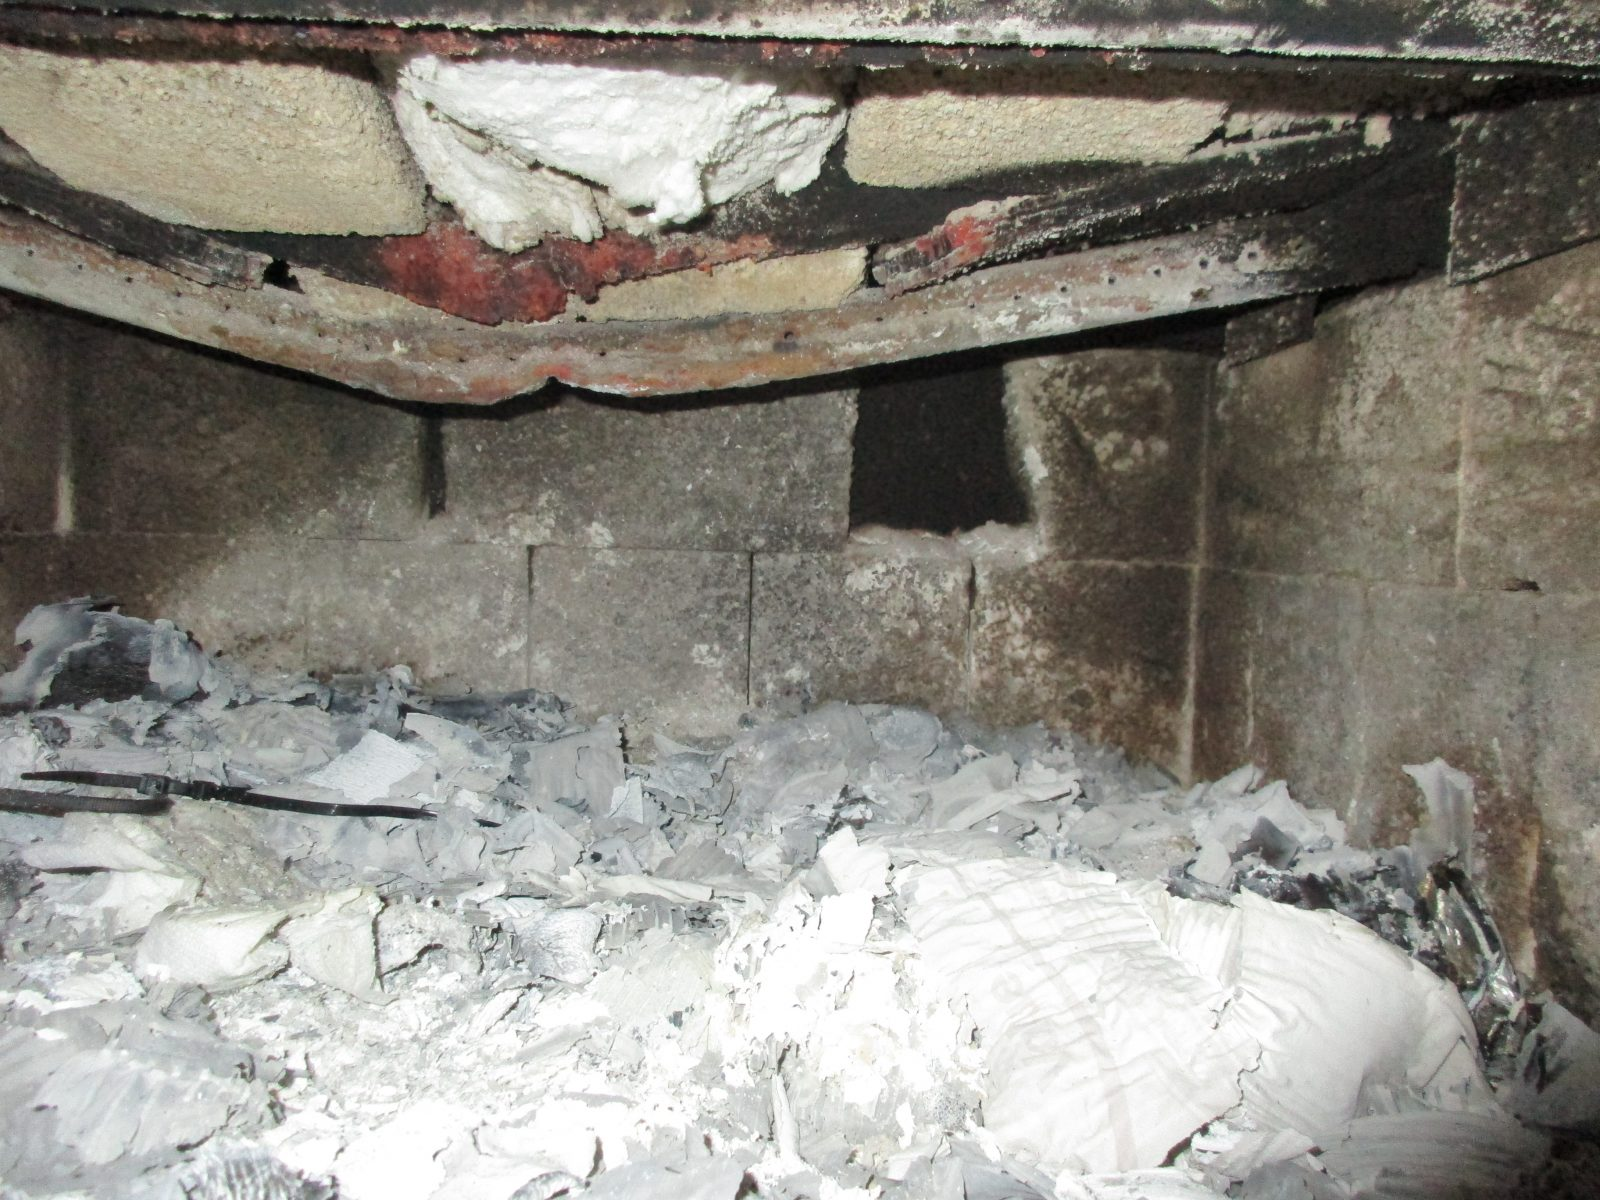 Wood Stove with damaged firebox - unit is non-compliant